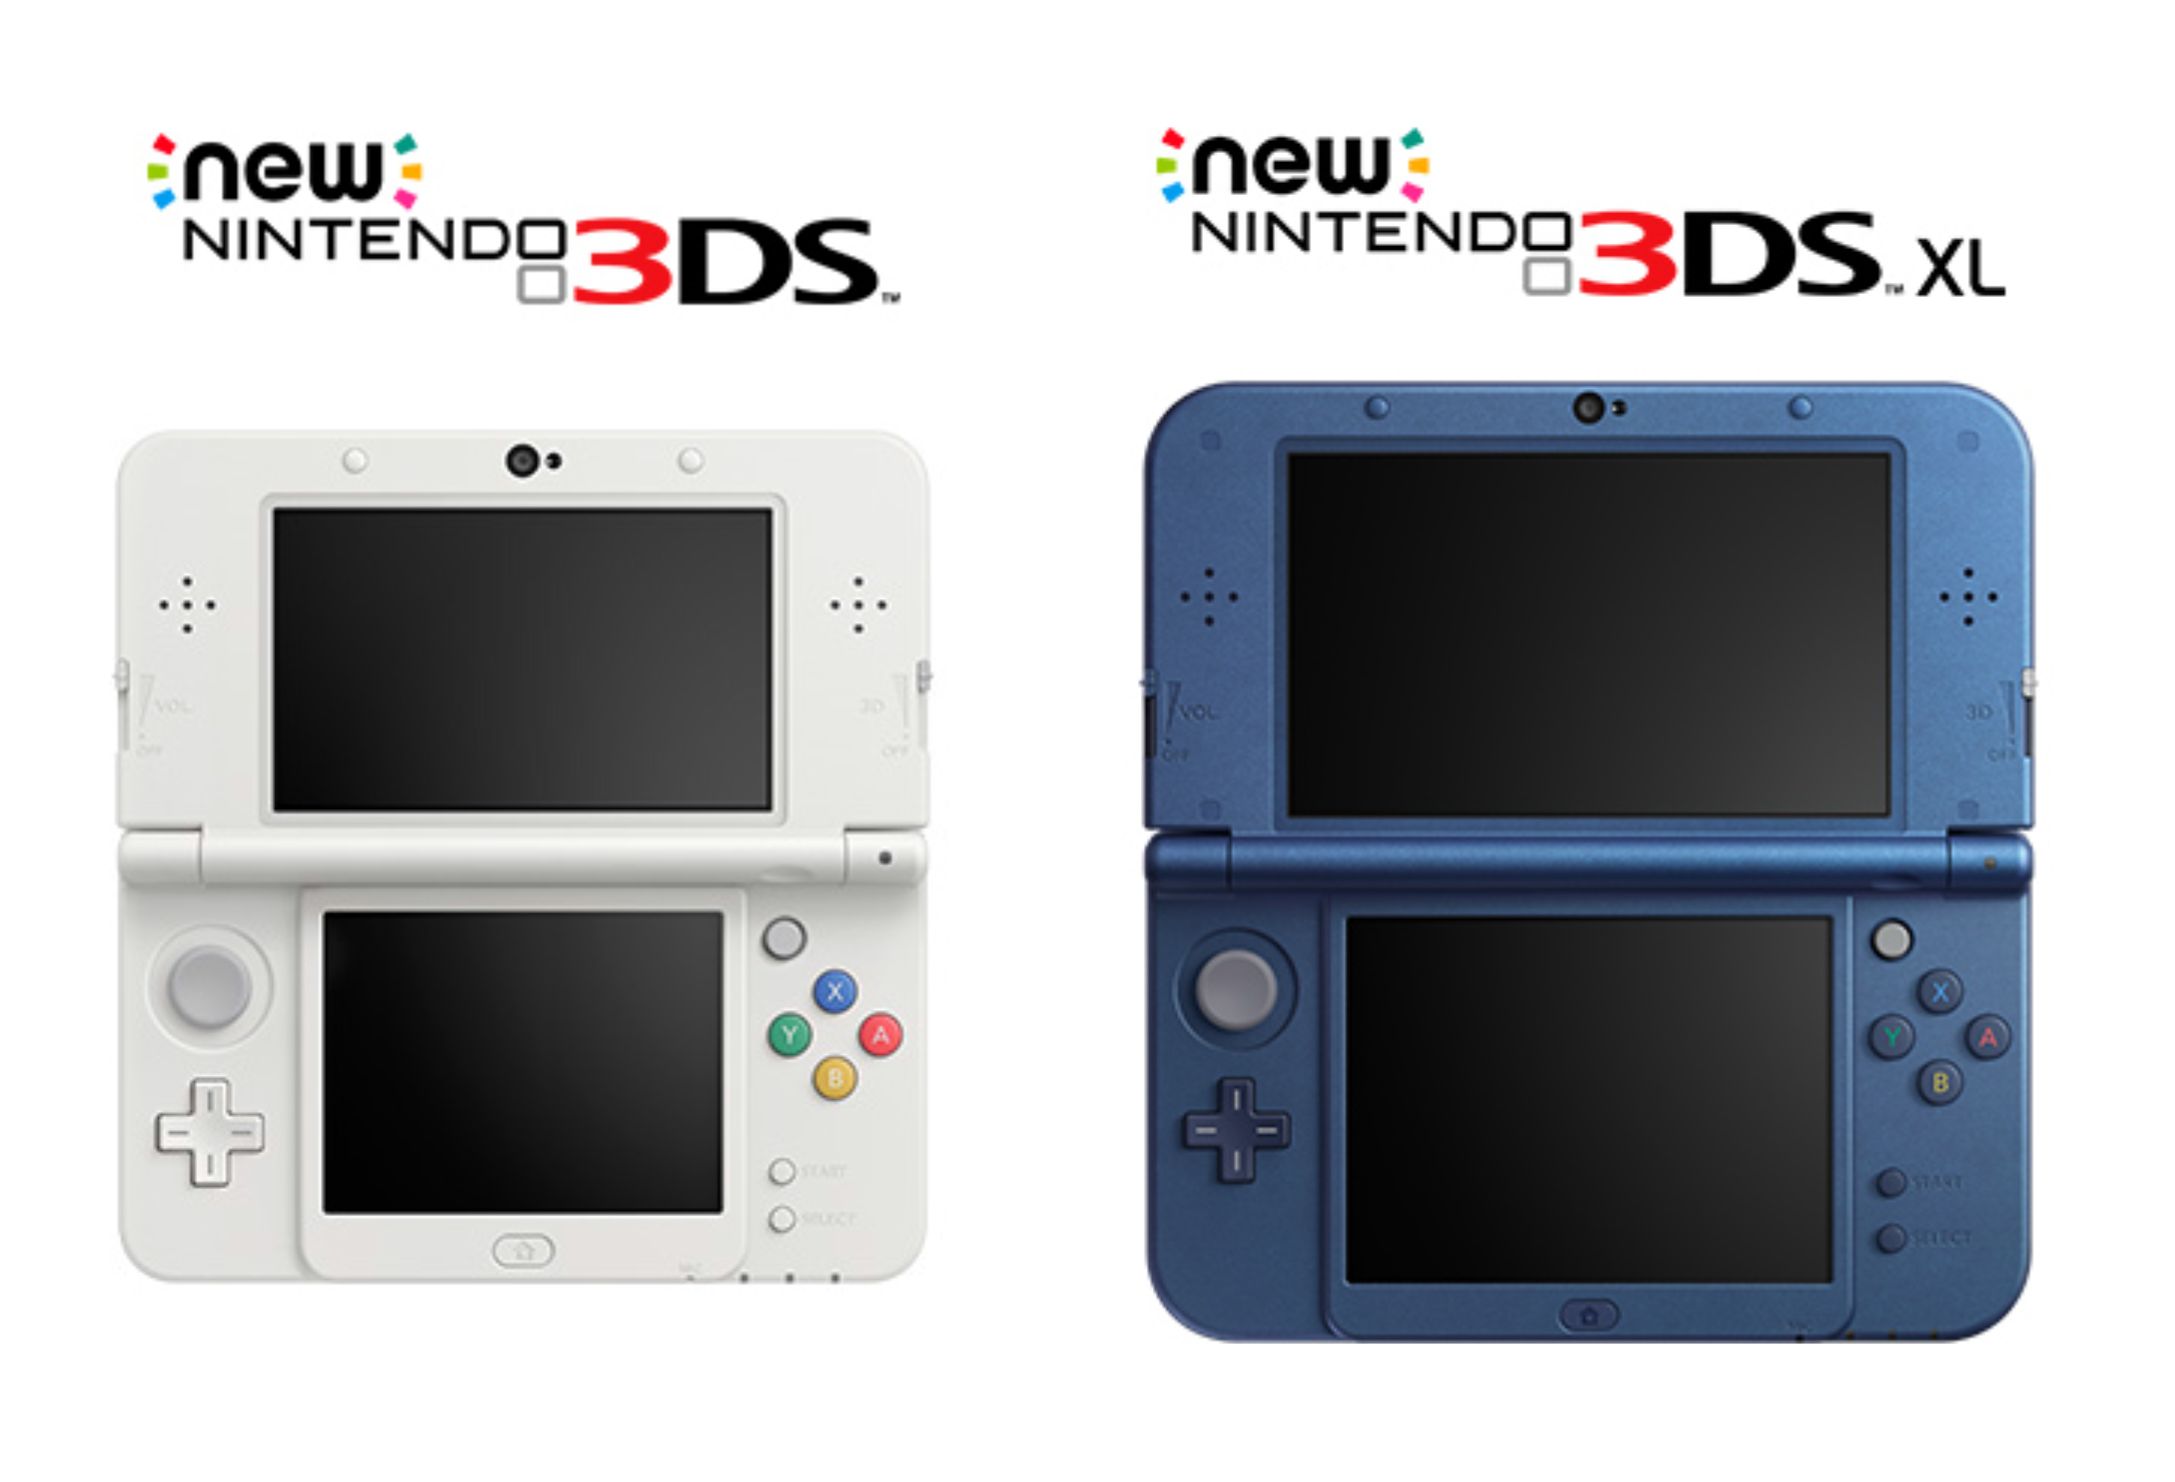 how to tell a nintendo 3ds from a new 3ds